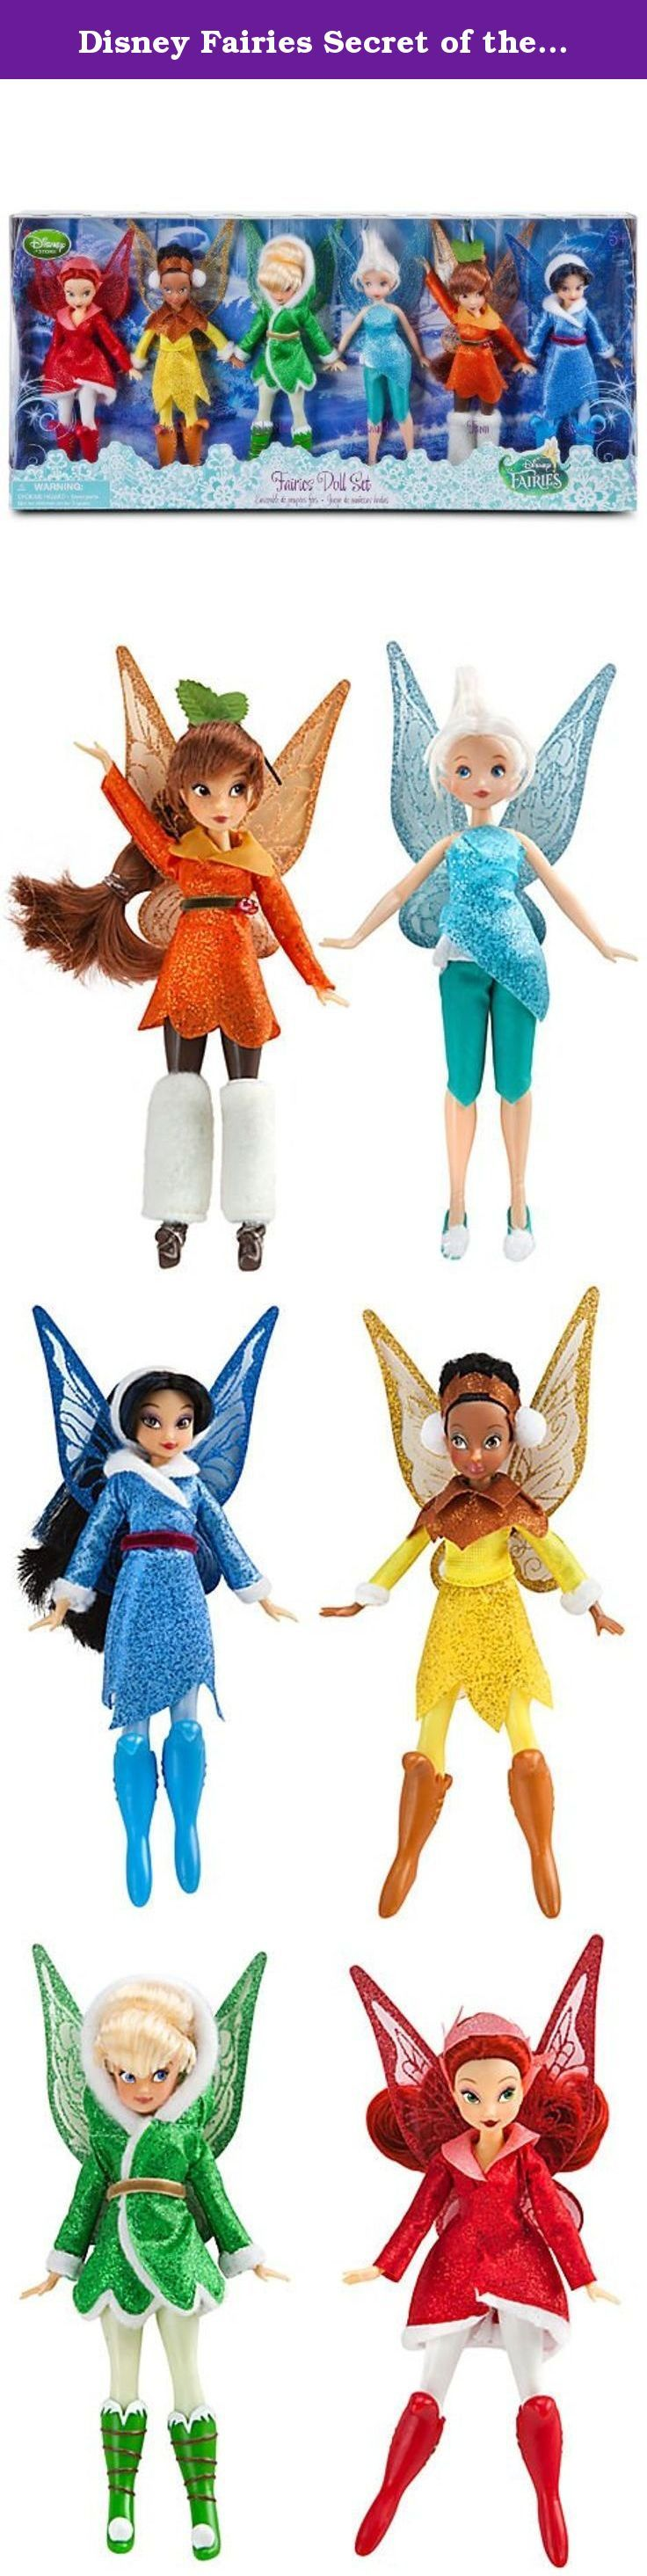 Disney Fairies Secret of the Wings EXCLUSIVE Action Figure 6-Pack Fairies Doll Set [Rosetta, Iridessa, Tinker Bell, Periwinkle, Fawn & Silvermist]. Tinker Bell and her friends are dressed for winter in this 6-piece set. The stars of Secret of the Wings are wrapped in their special glittering outfits from the movie, complete with matching wings, making for lots of fairy play!.